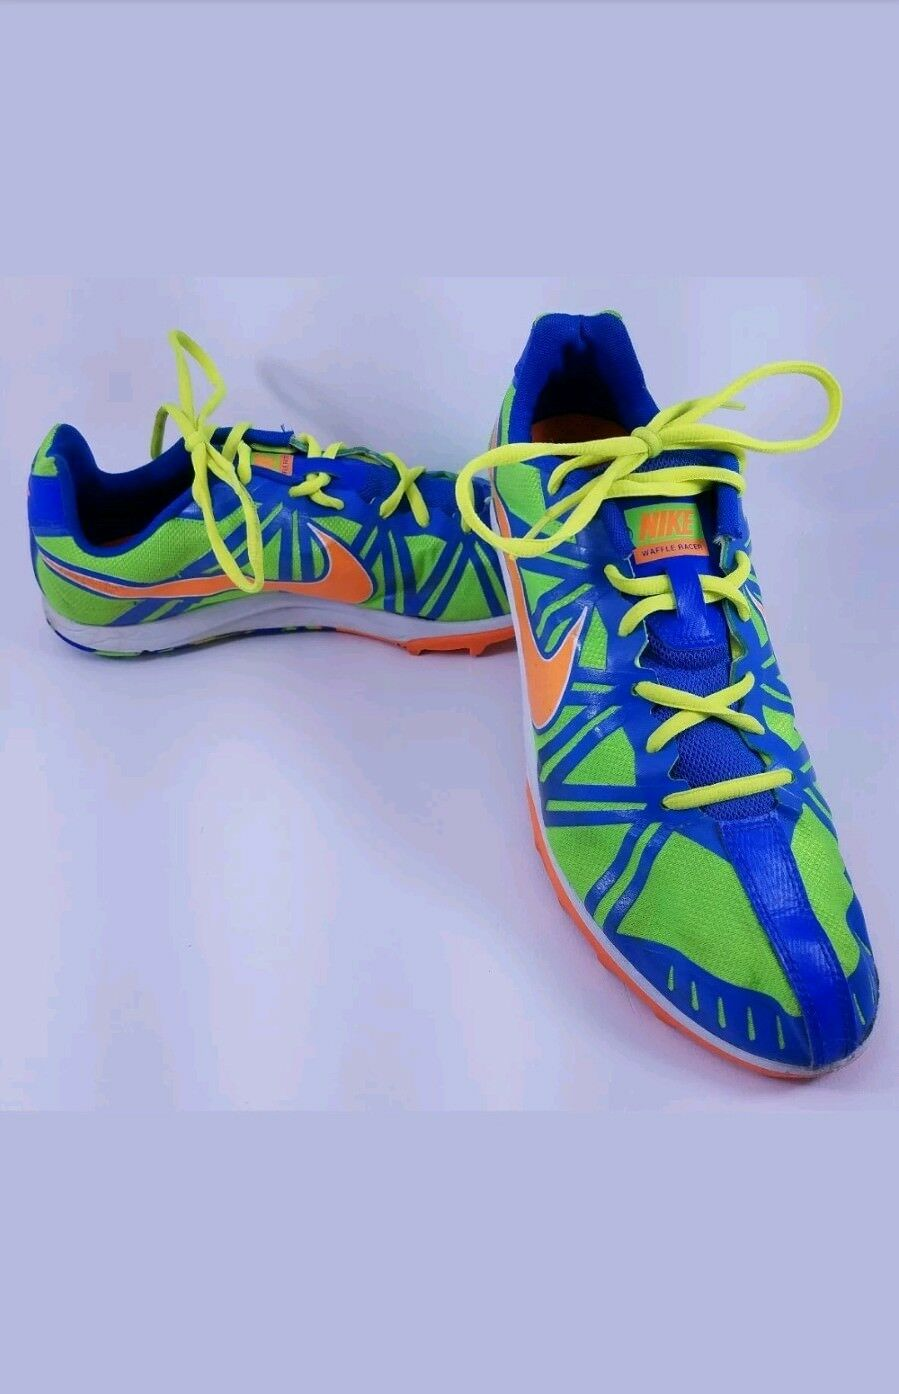 Vintage Nike Neon Waffle Racer 453972-384 Discnt Track Running Mens Price reduction  Cheap women's shoes women's shoes